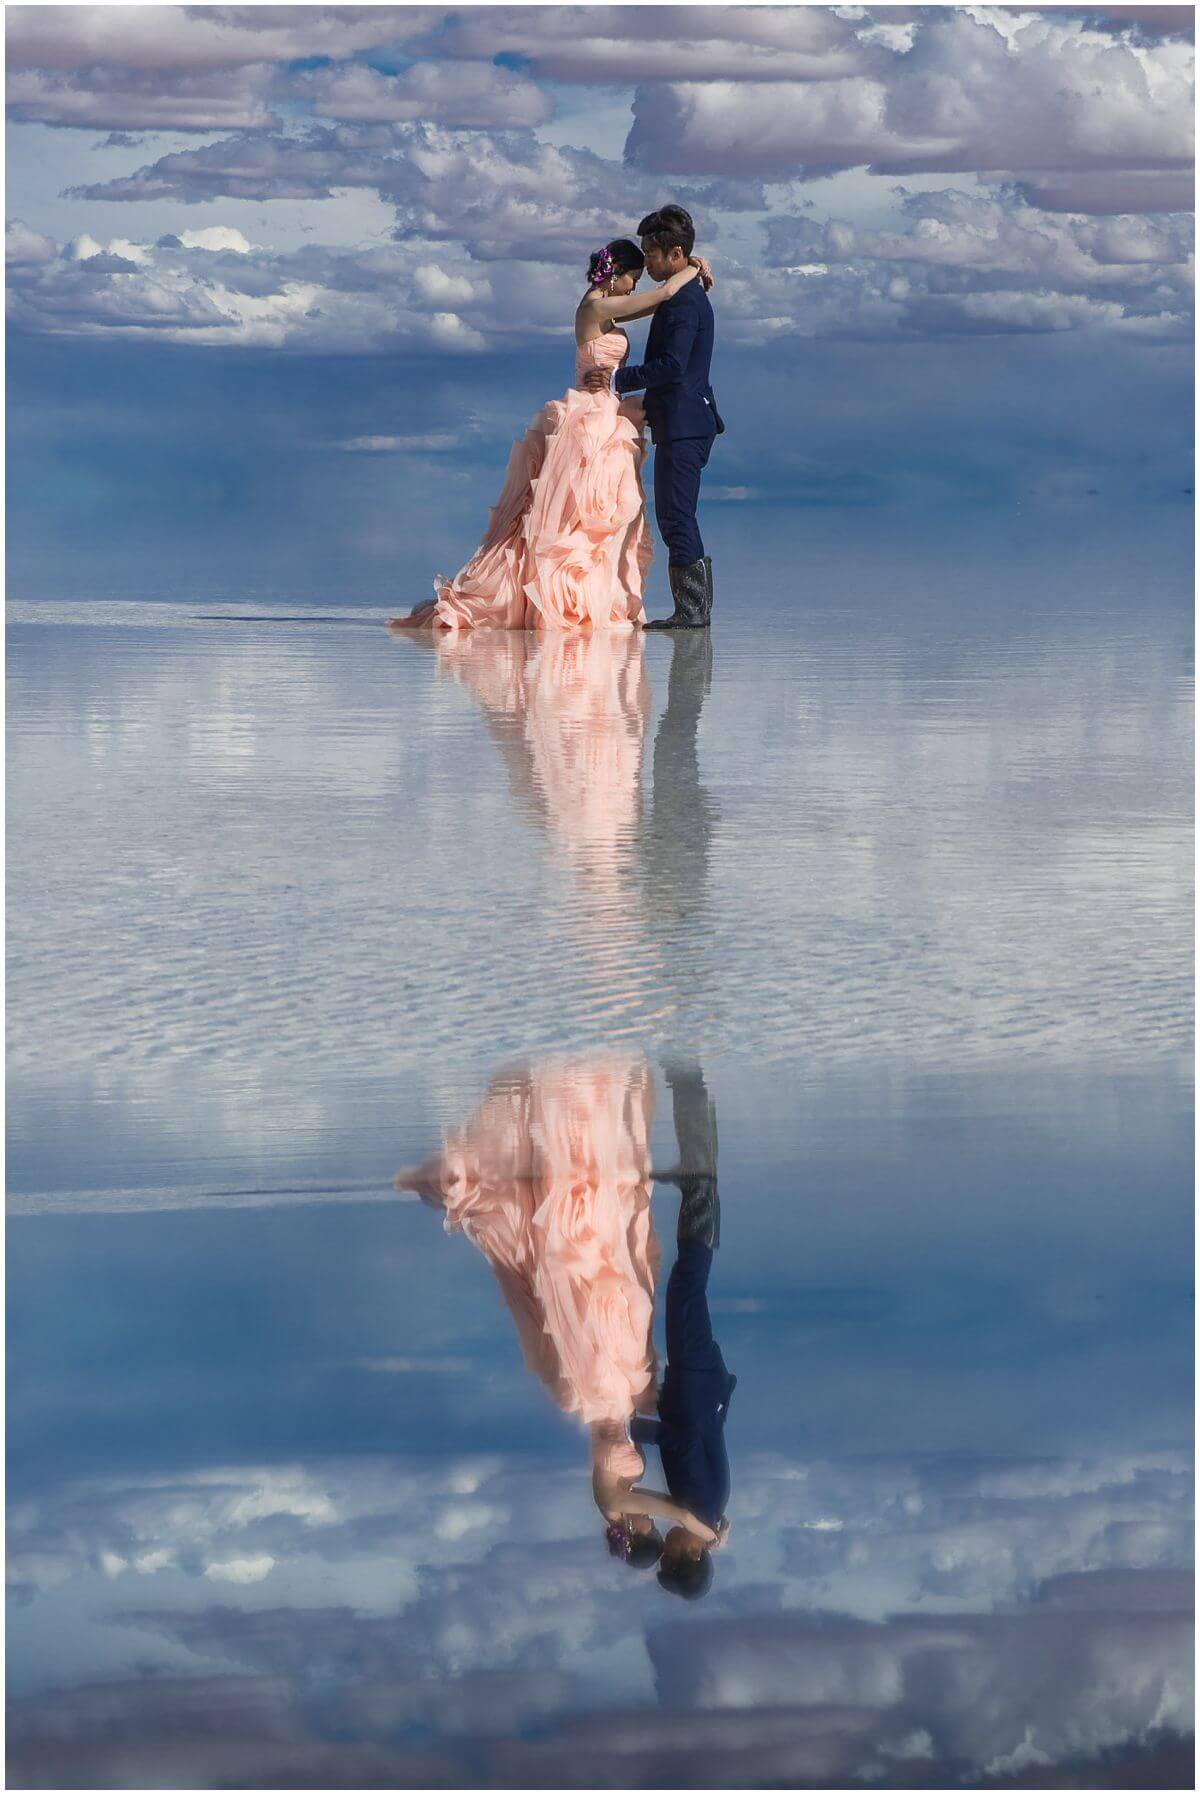 Salar-de-Uyuni-Wedding-Photography-Maik-Dobiey_0012